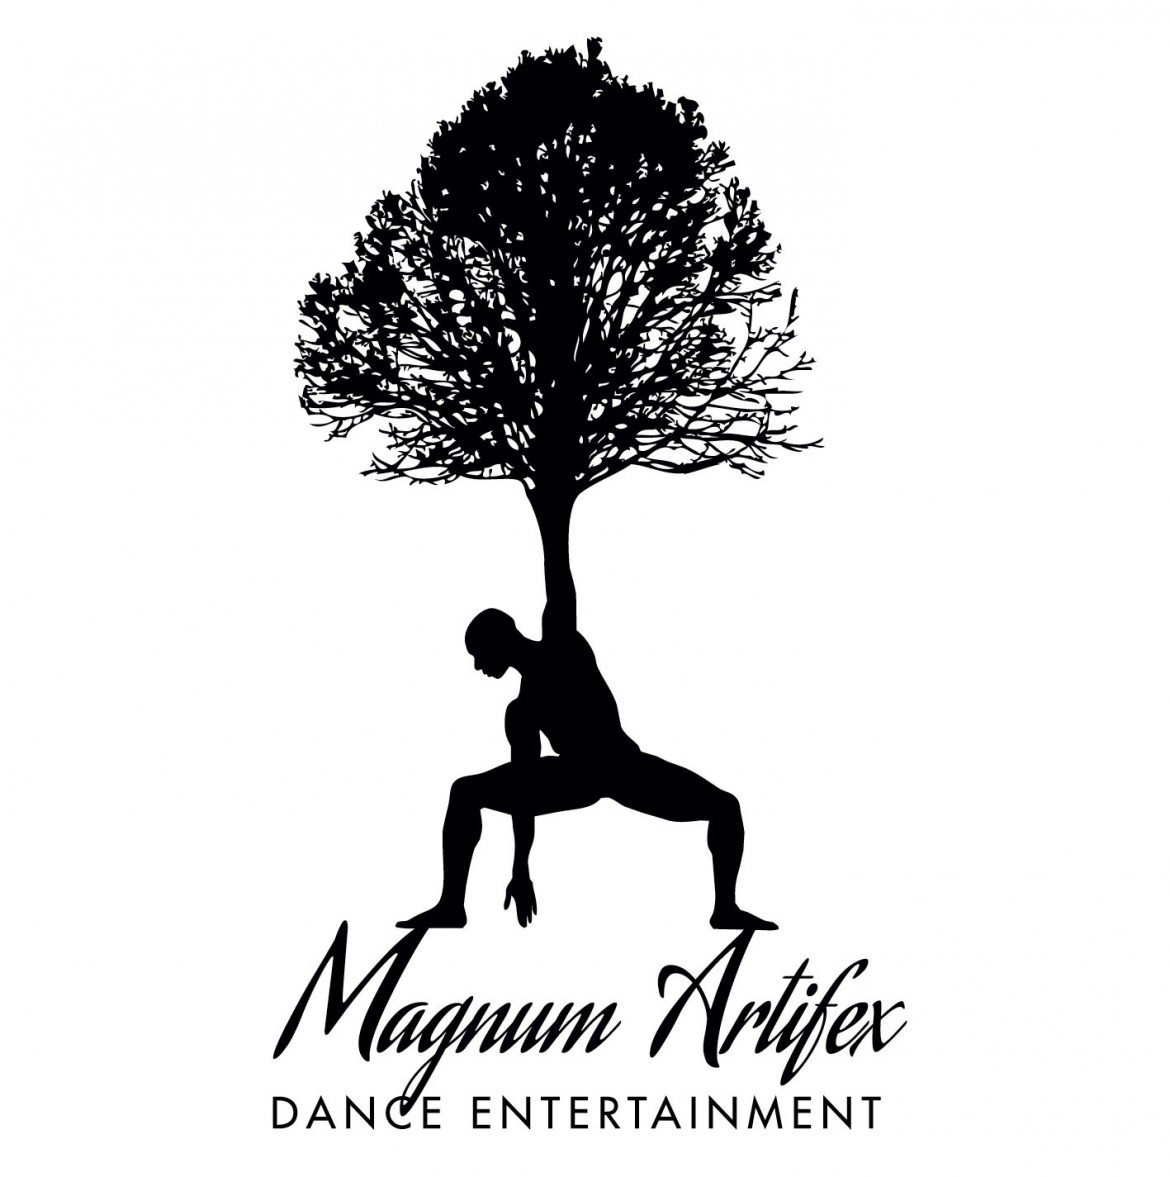 Magnum Artifex Dance Entertainment Leeds